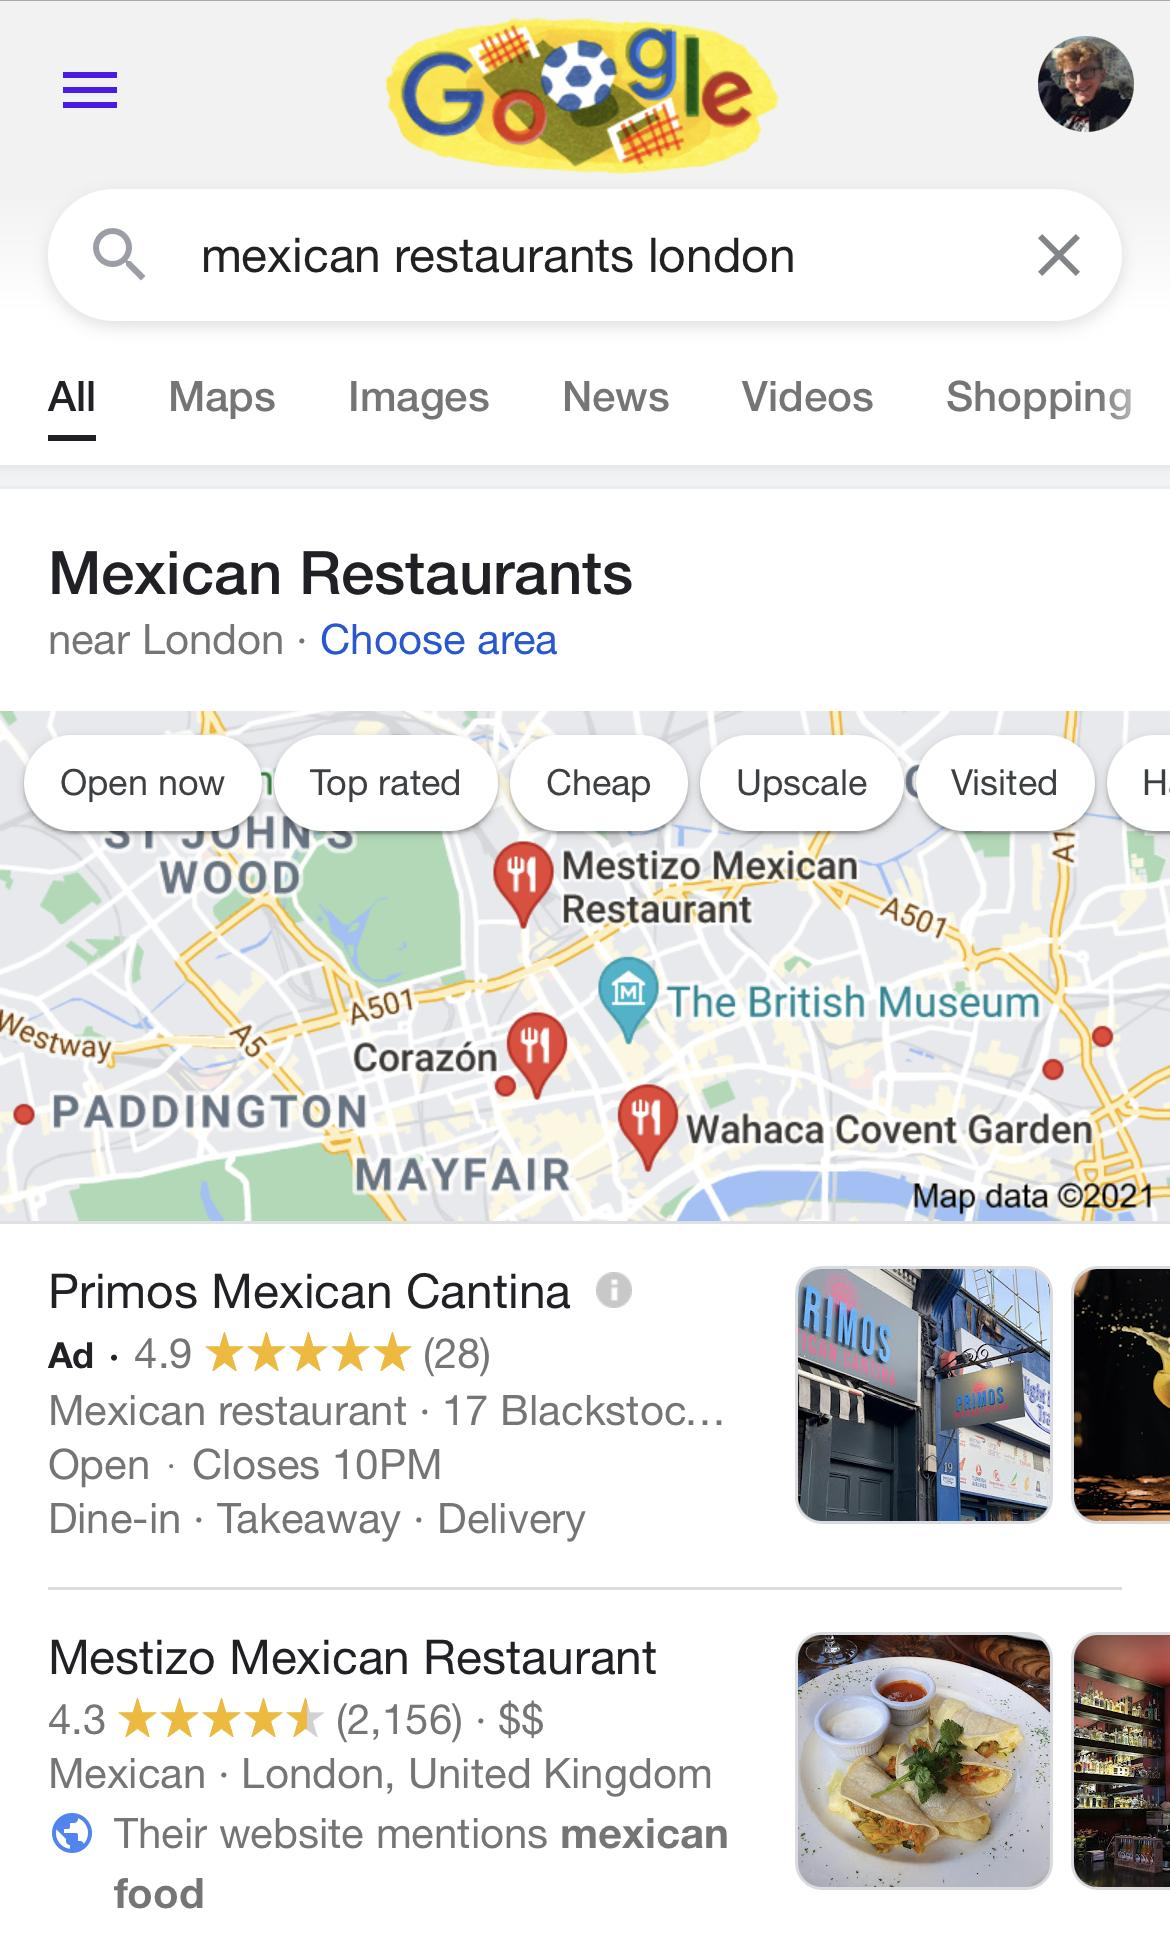 Mexican Restaurants Local Search Example